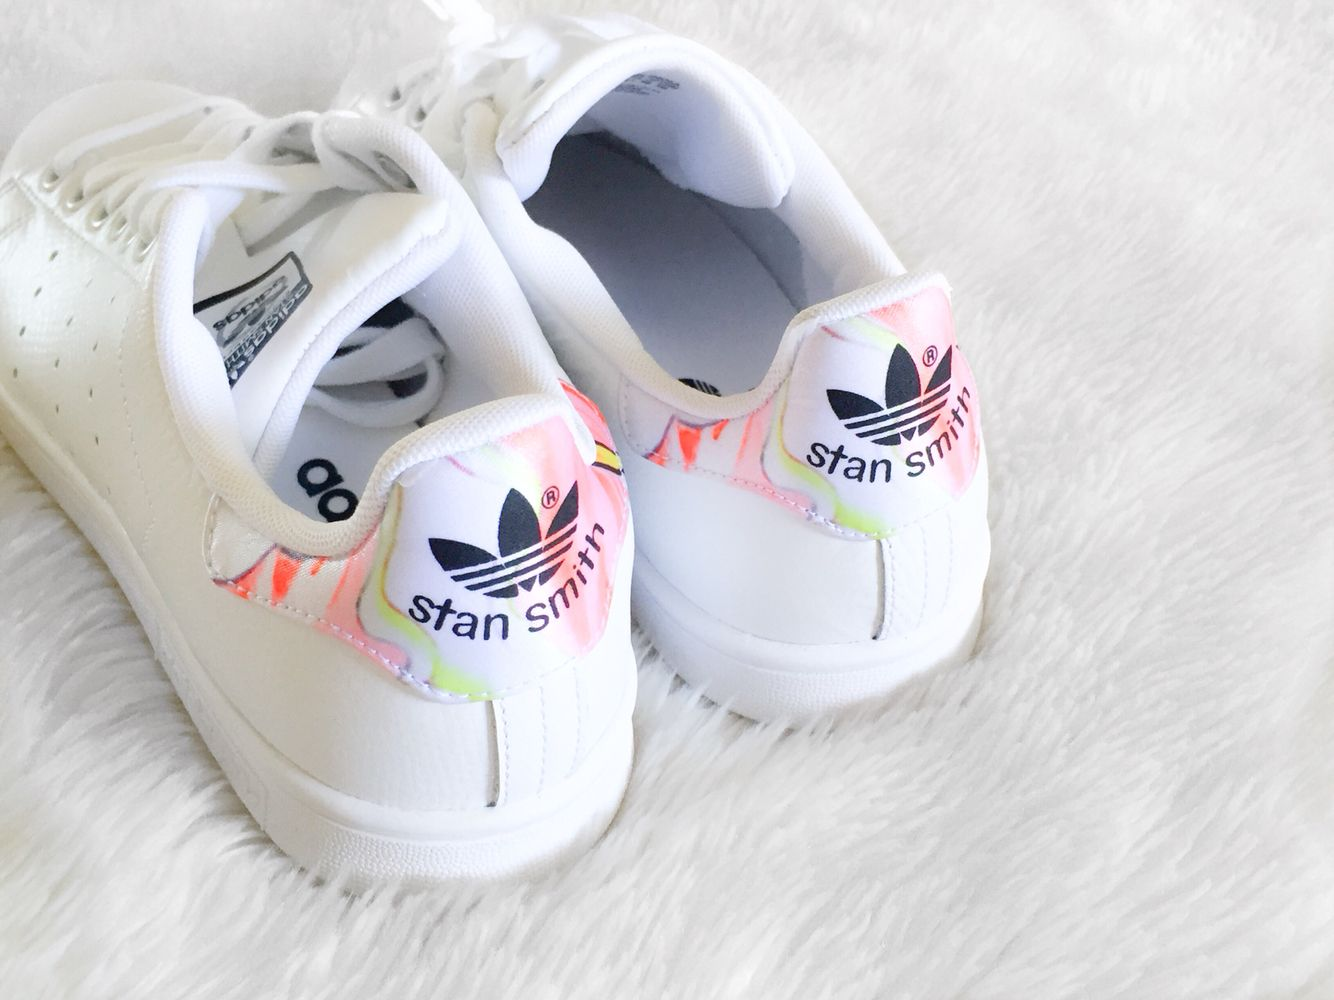 shoes cardigan | Chaussures, Soulier adidas et Chaussure